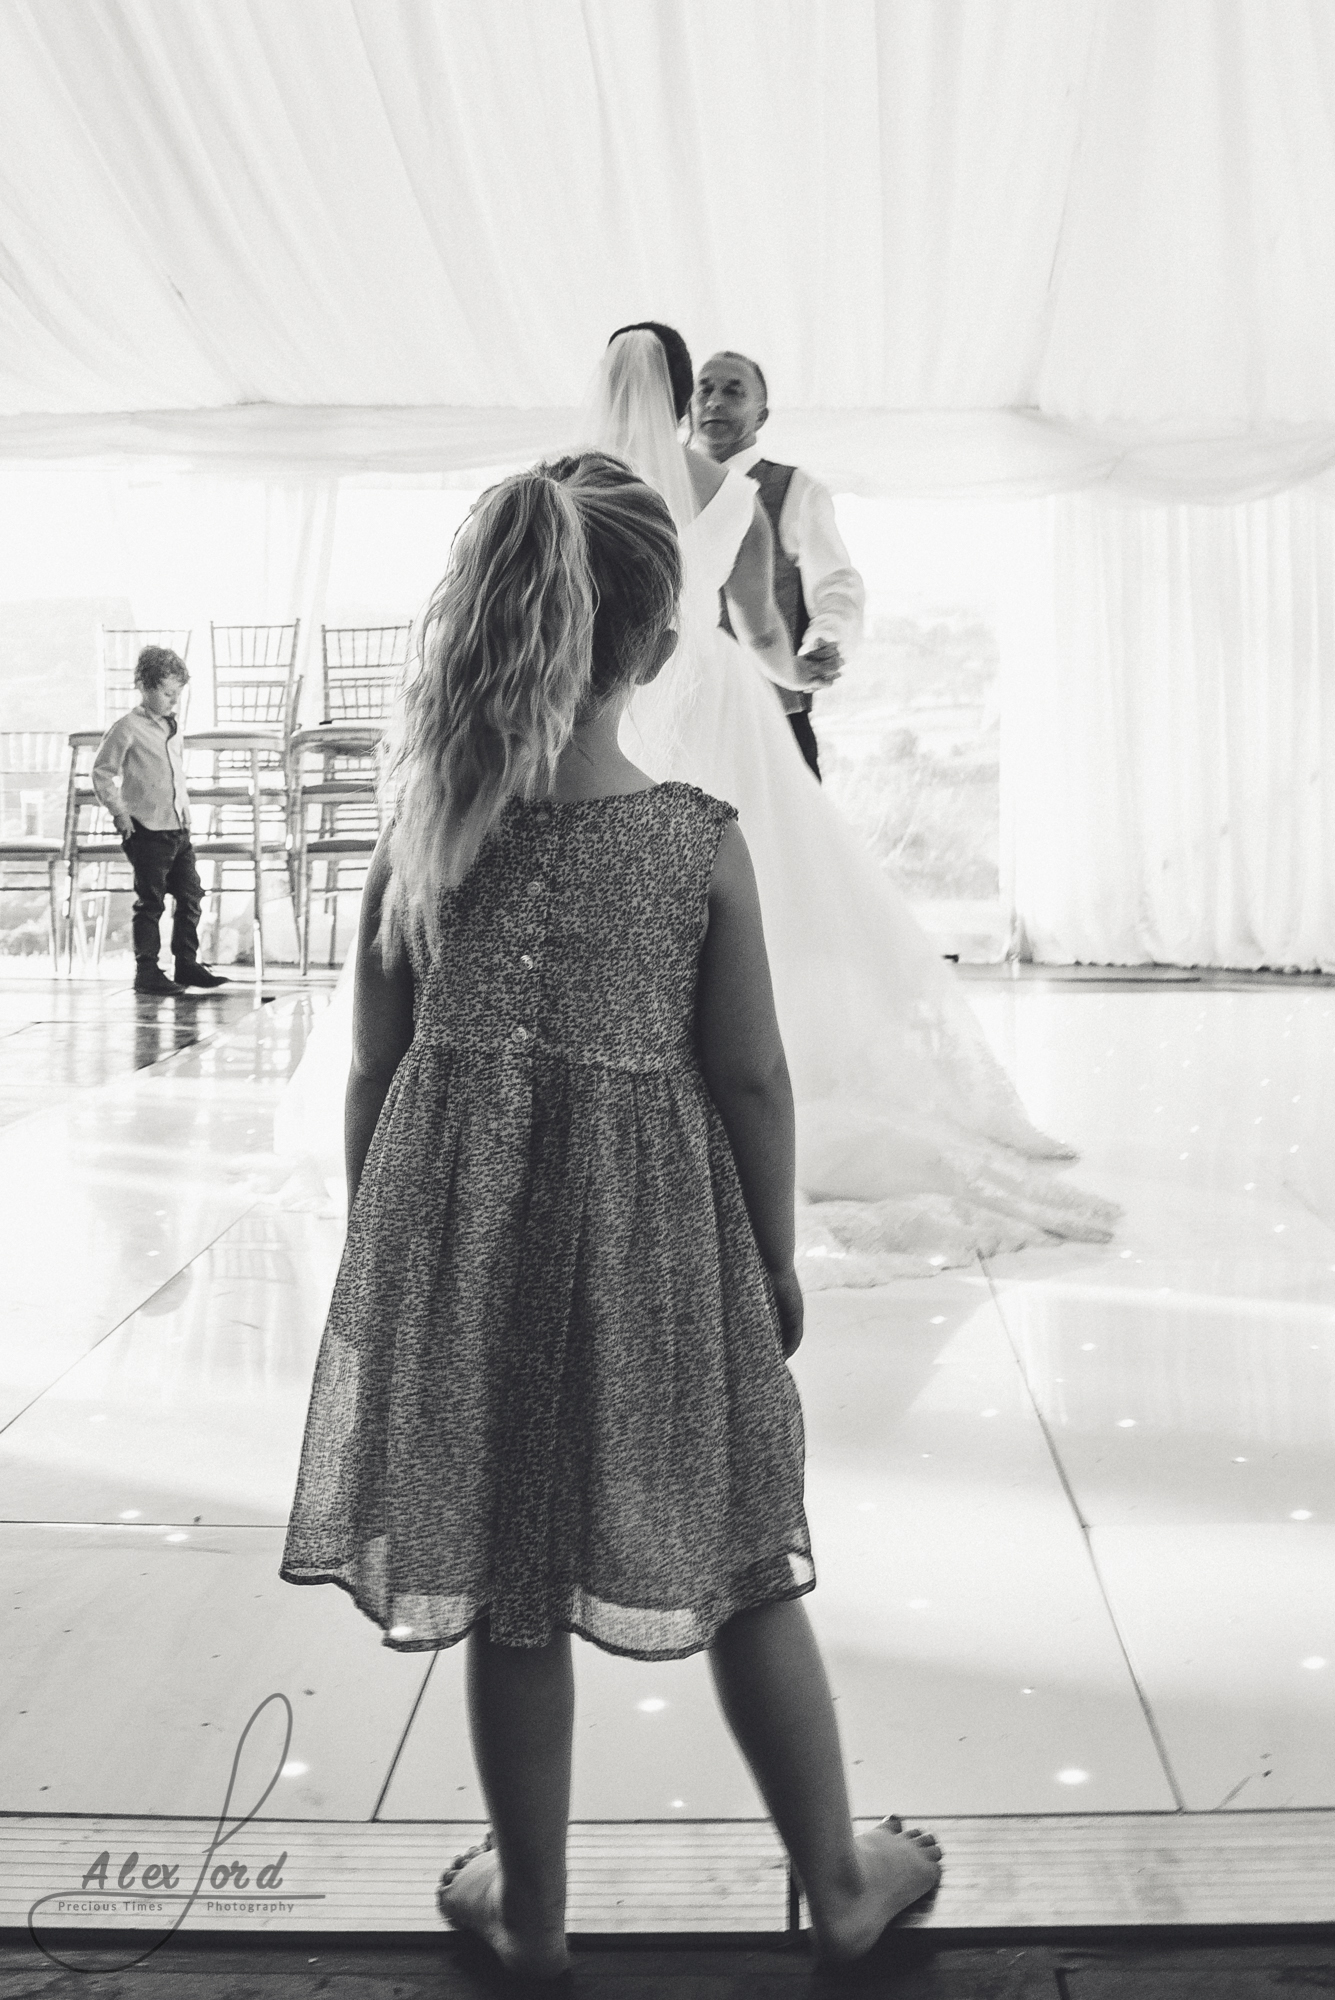 A young girl wedding guest stands at the edge of the dance floor watching the bride and groom take their first dance.